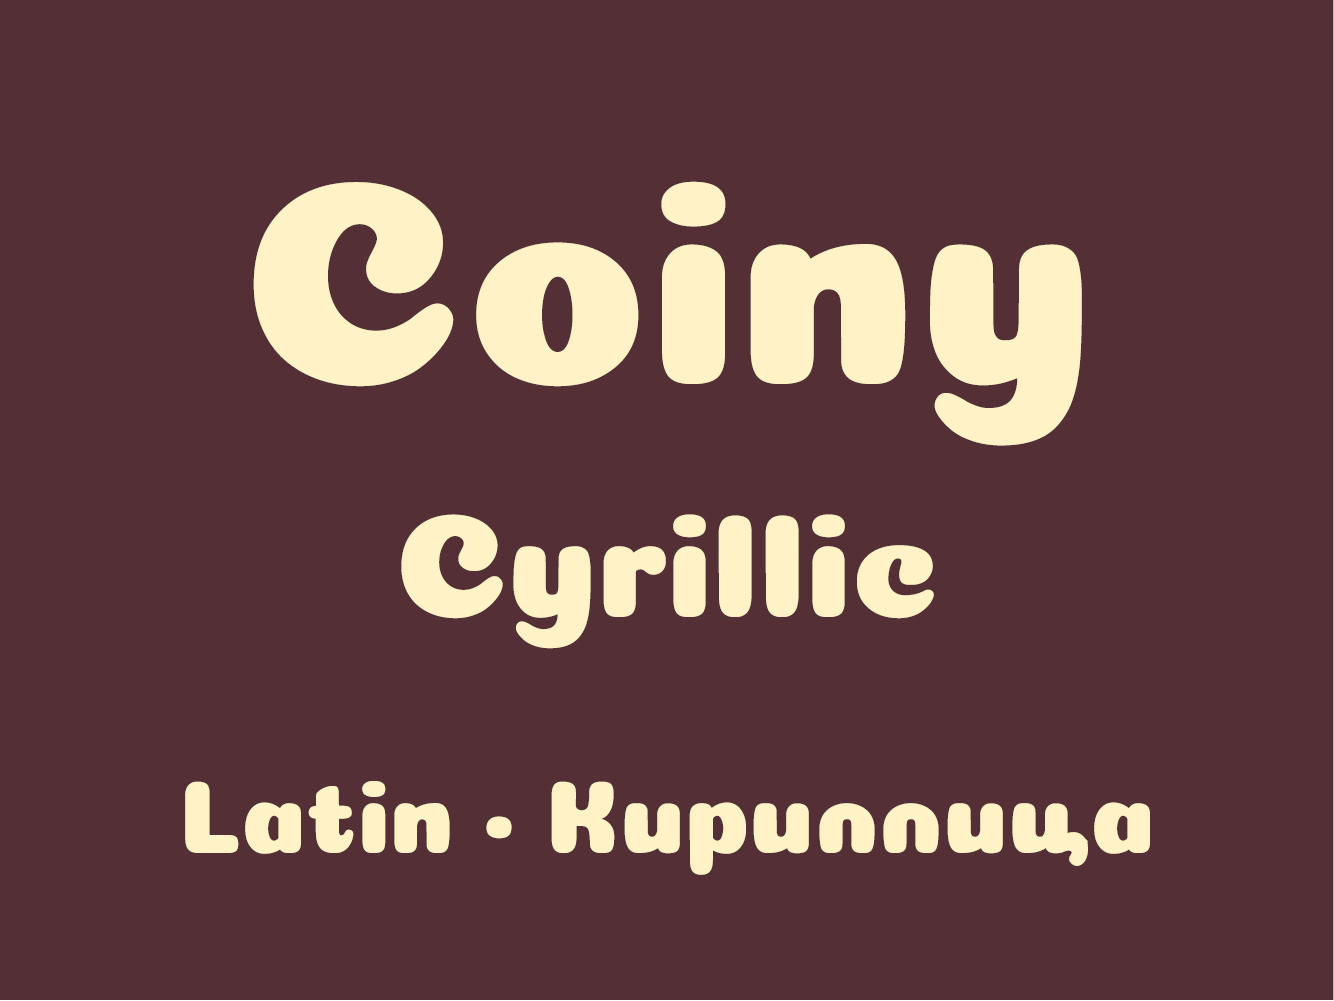 Coiny Cyrillic by Marcelo Magalhaes